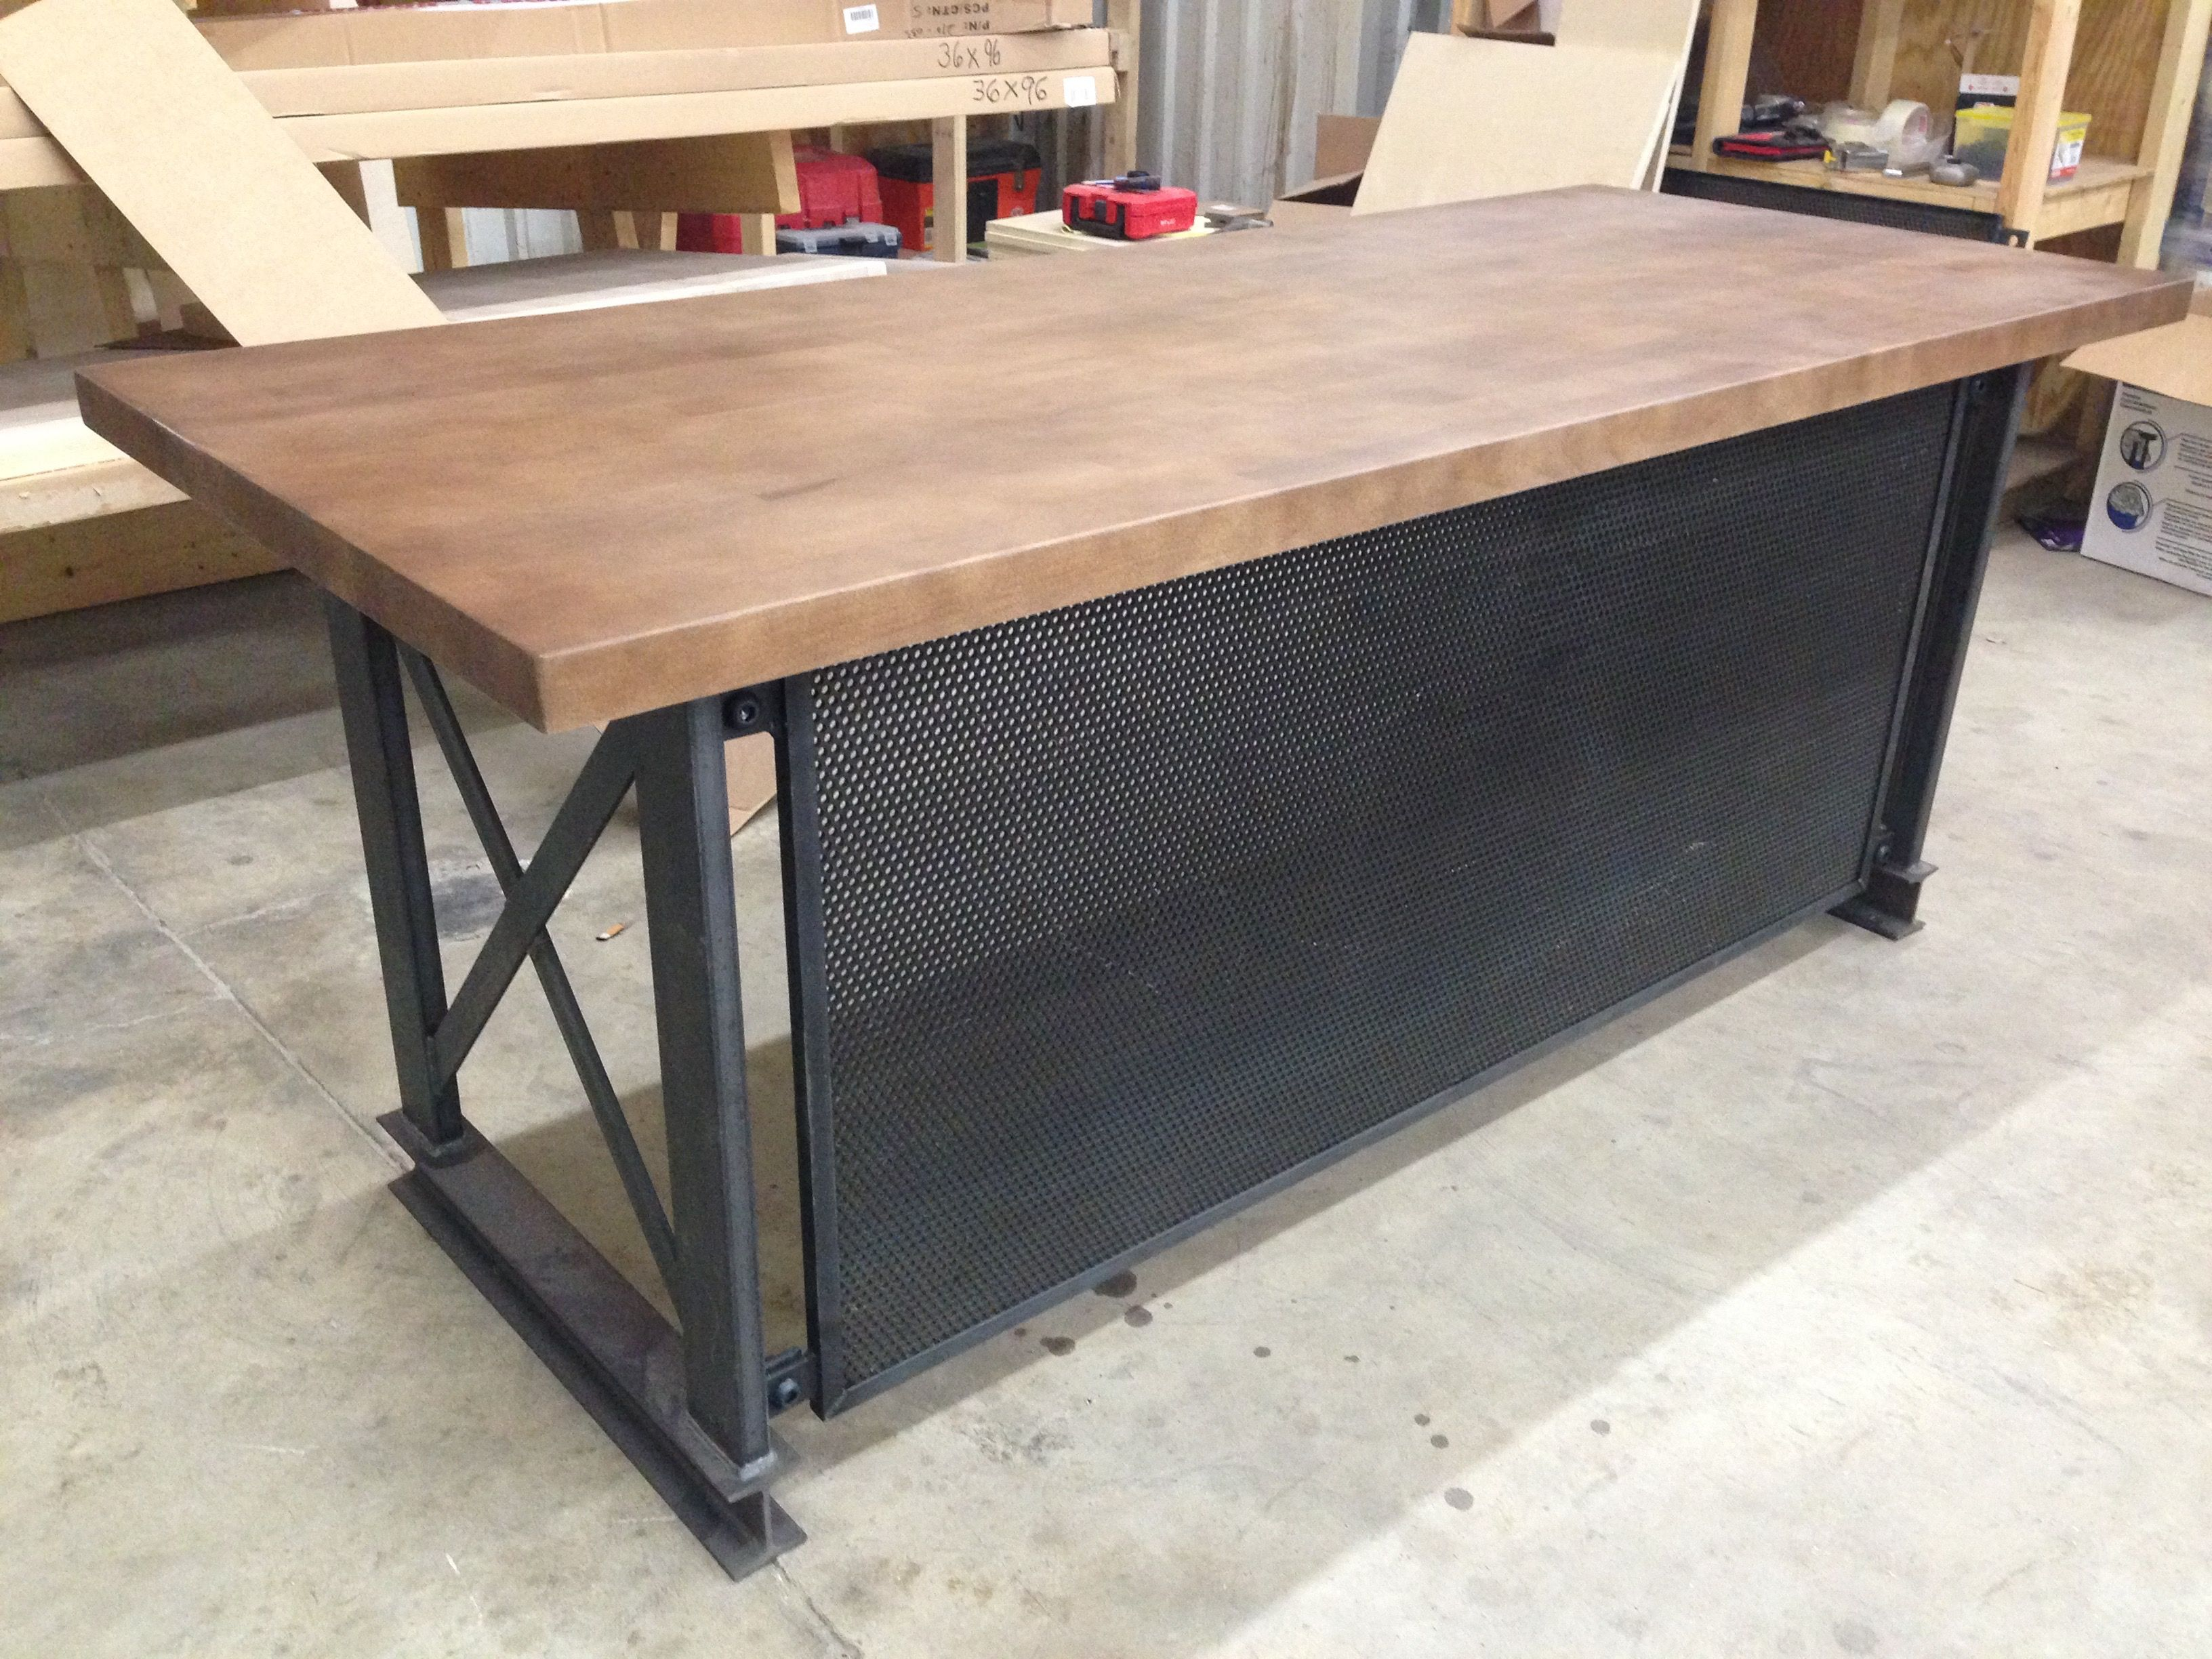 Buy a handmade the industrial carruca office desk made to order from iron age office - Custom office desk ...